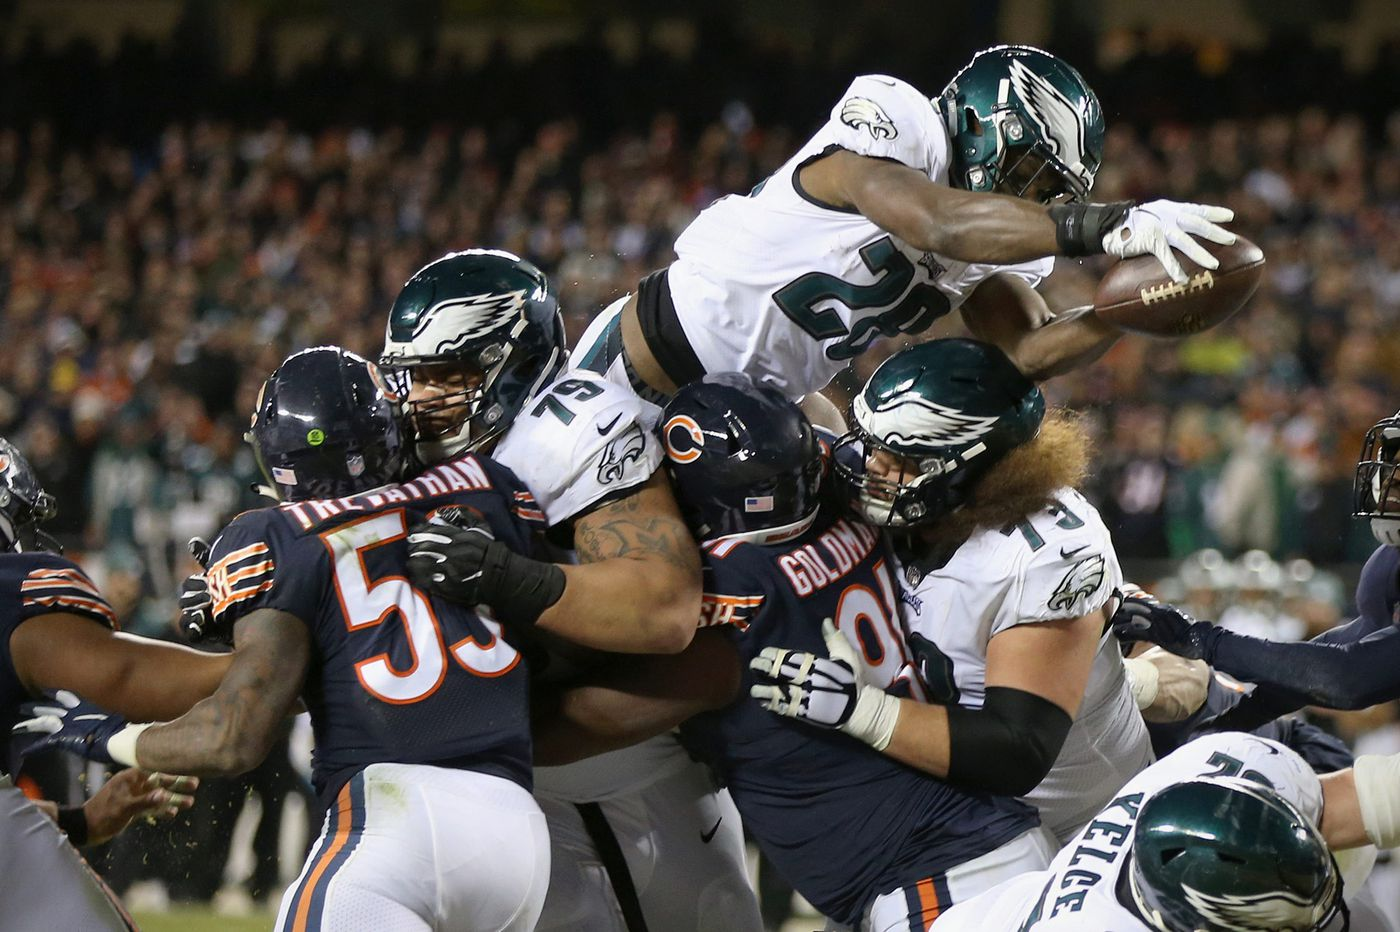 Inactive last postseason, Eagles running back Wendell Smallwood is contributing this time